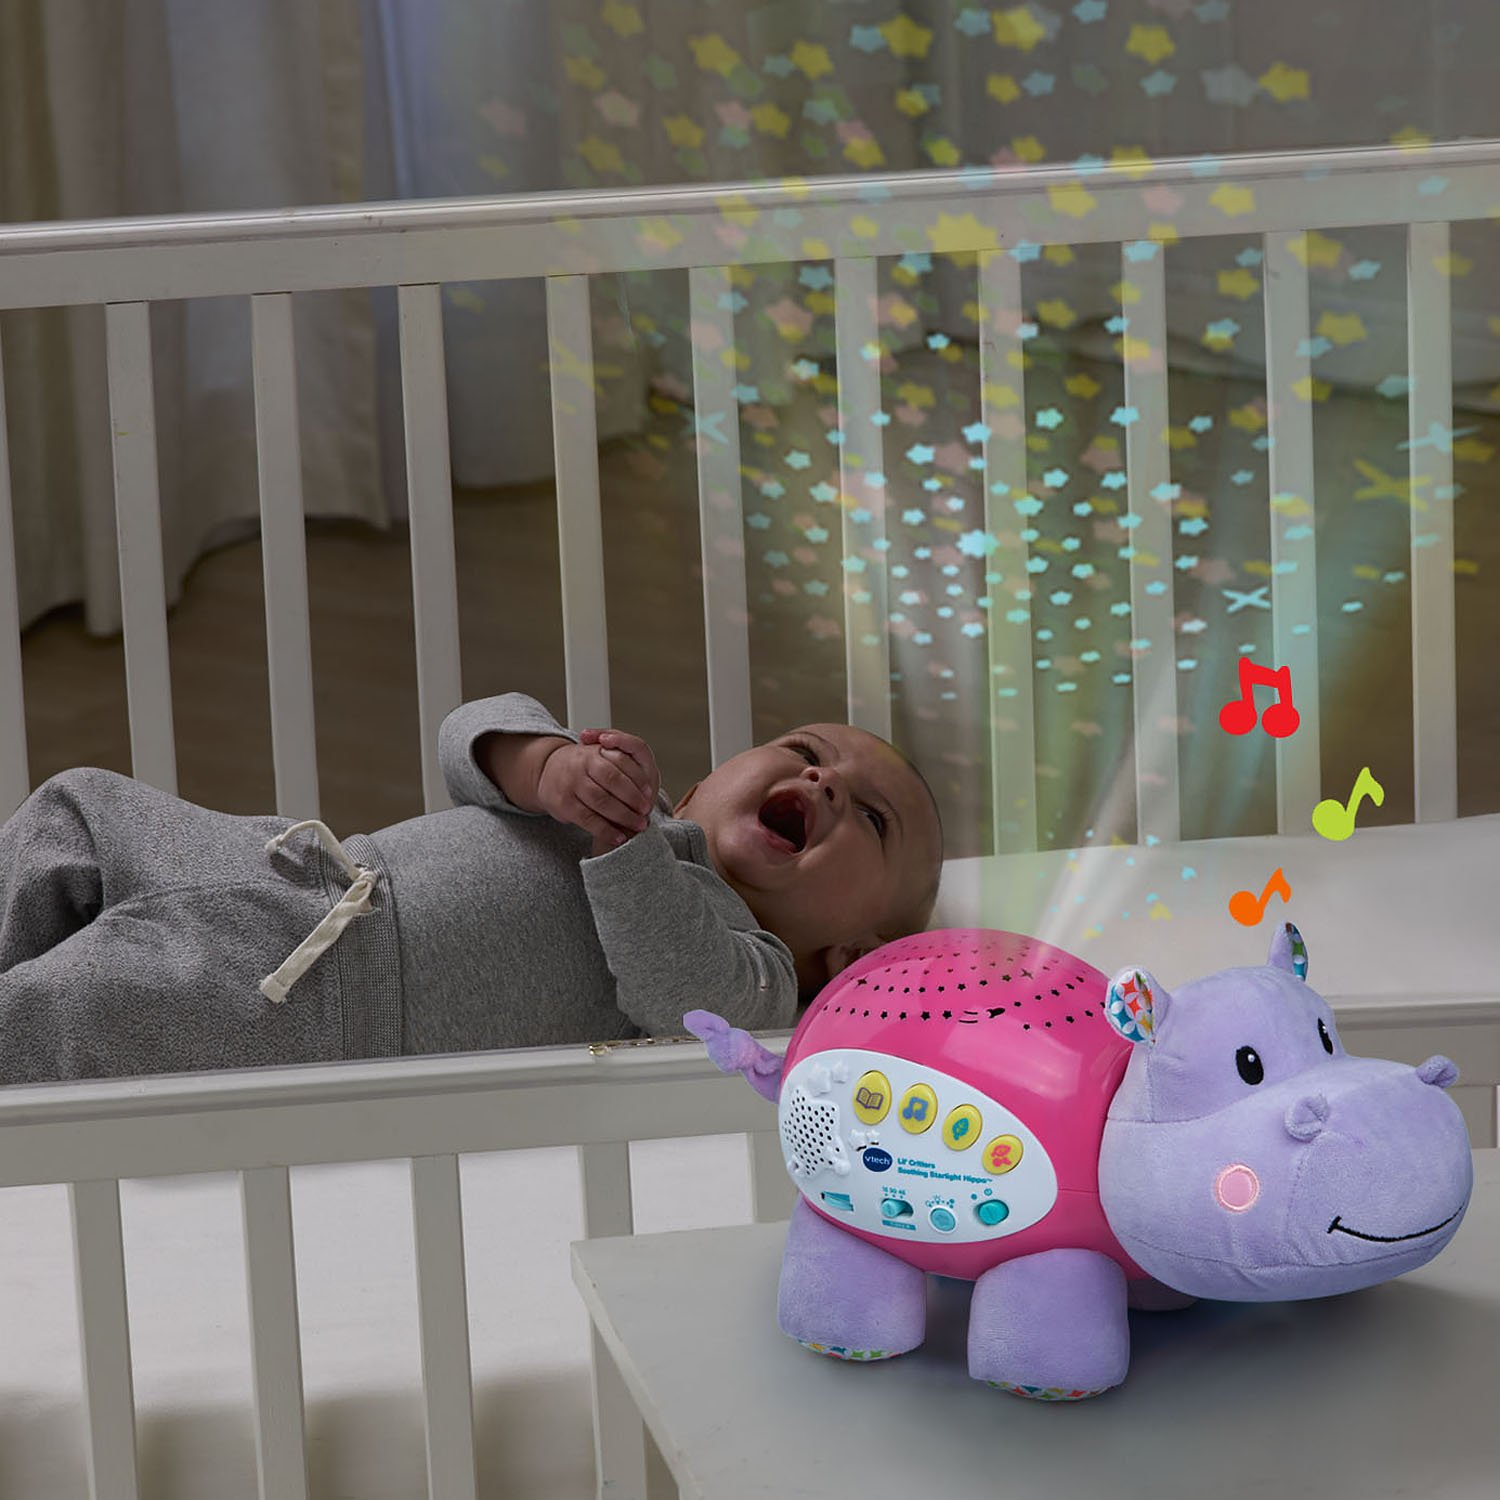 VTech Baby Lil' Critters Soothing Starlight Hippo, Pink (Amazon Exclusive) by VTech (Image #5)